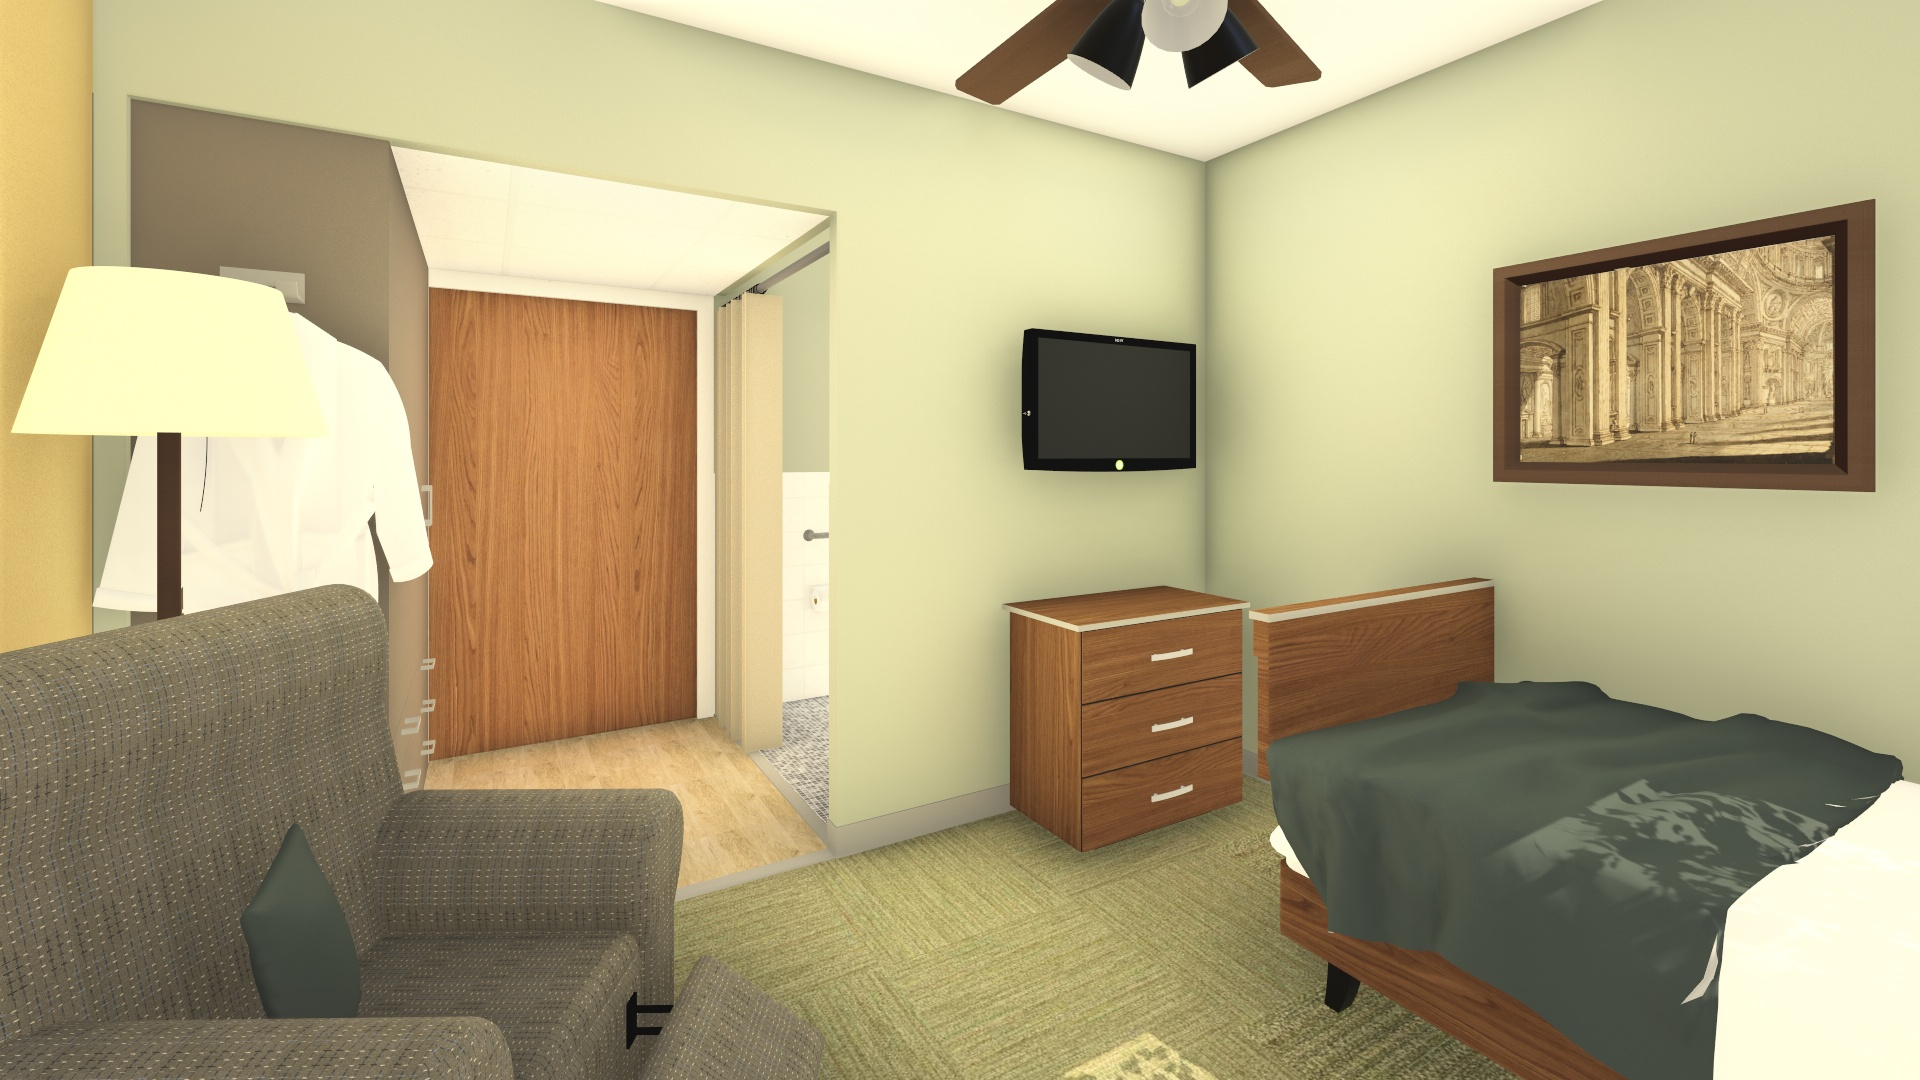 IN PROCESS: Rendering of Proposed Upgrades